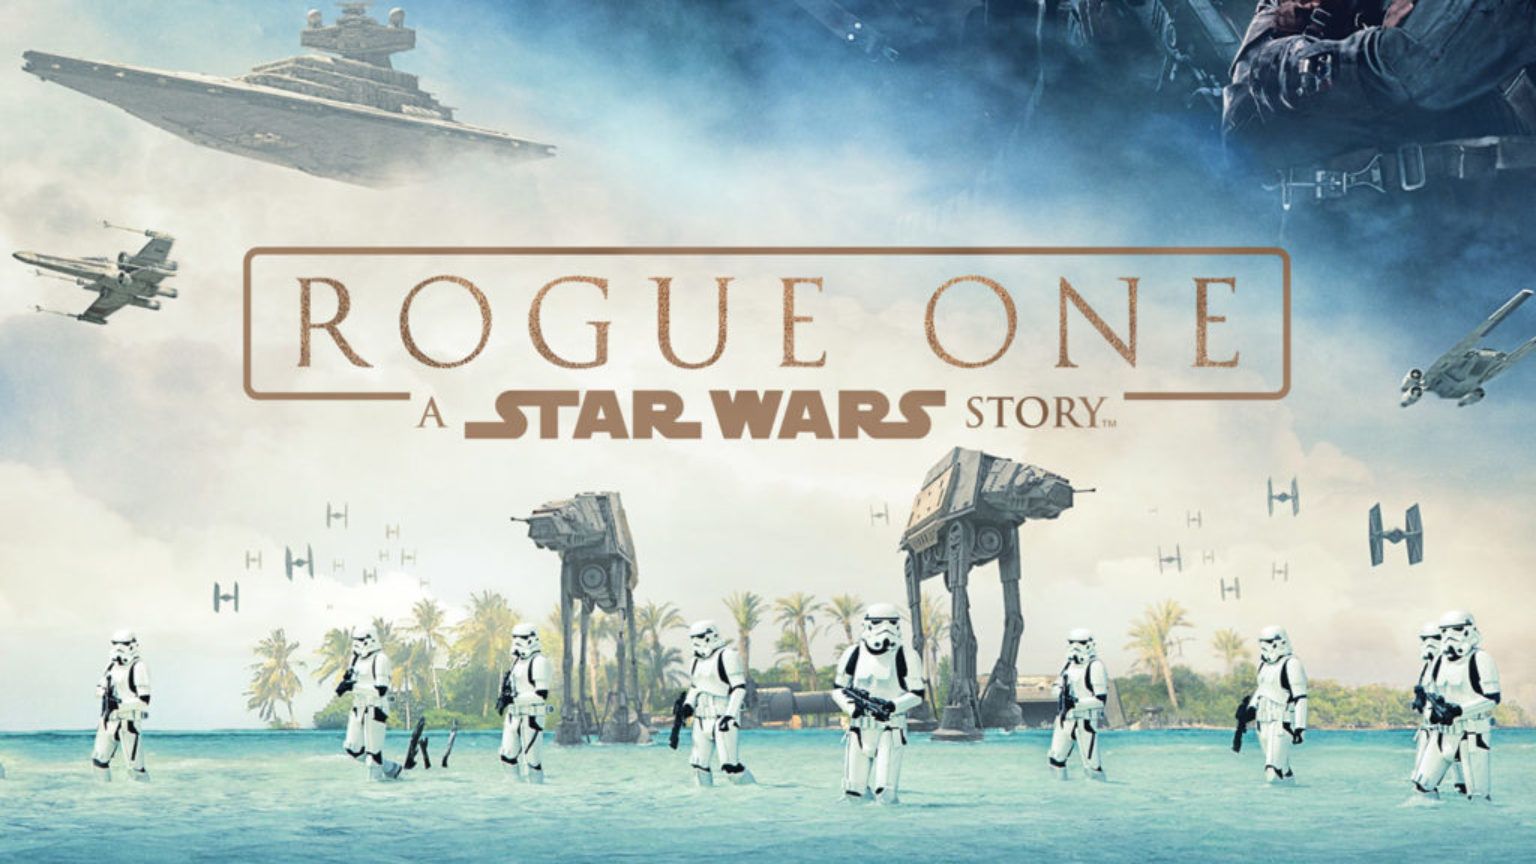 Rogue One: A Star Wars Story Tickets On Sale